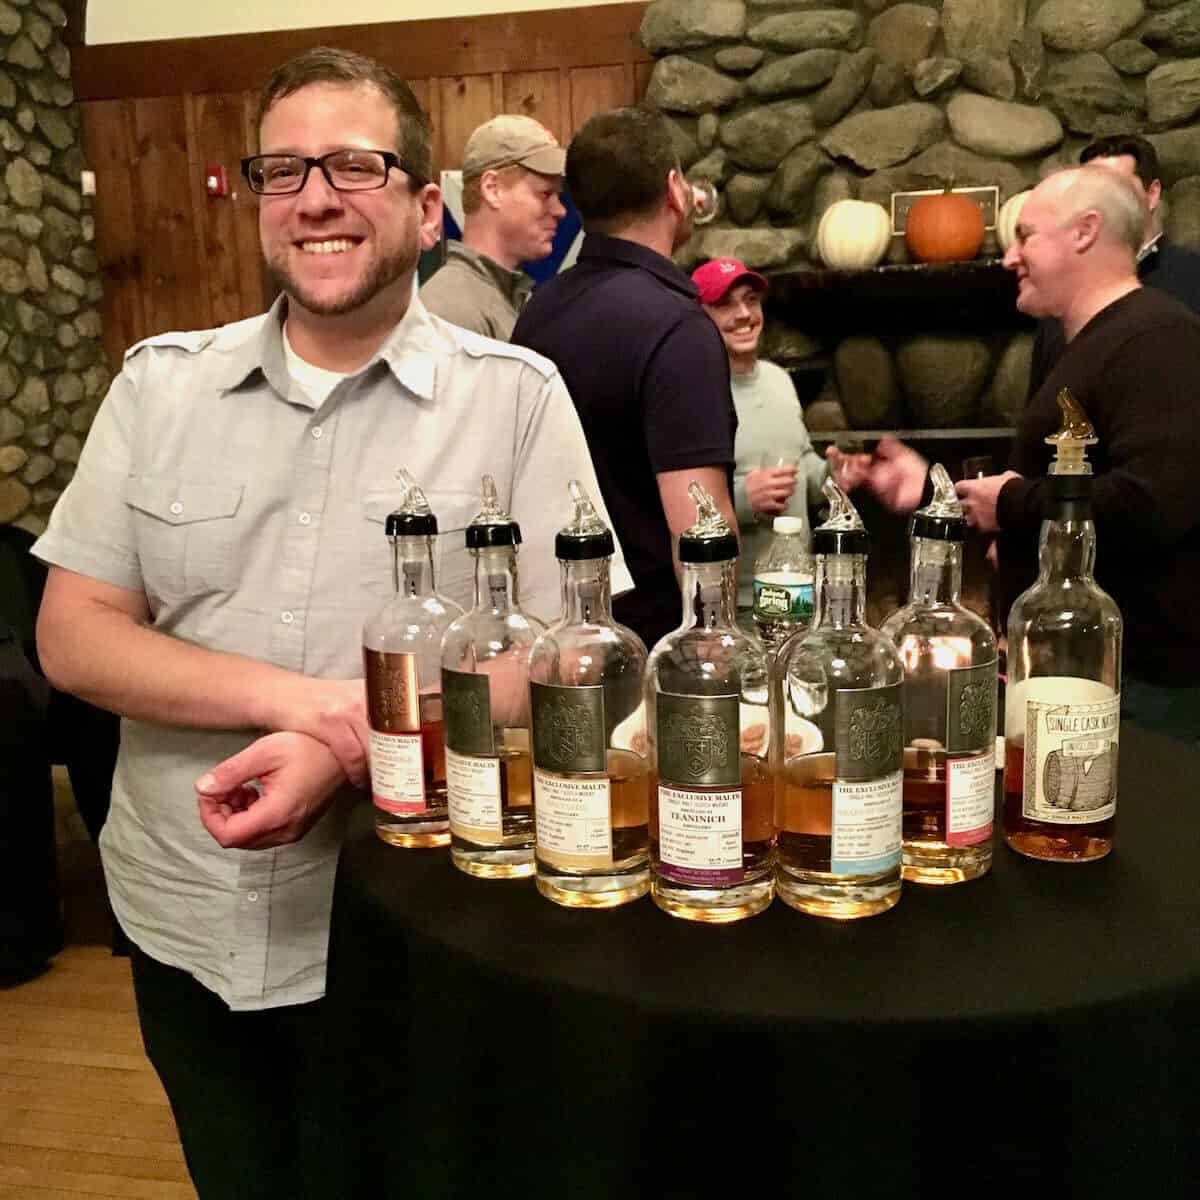 Joshua Hatton with the Exclusive Malts lineup in bottles on a table.